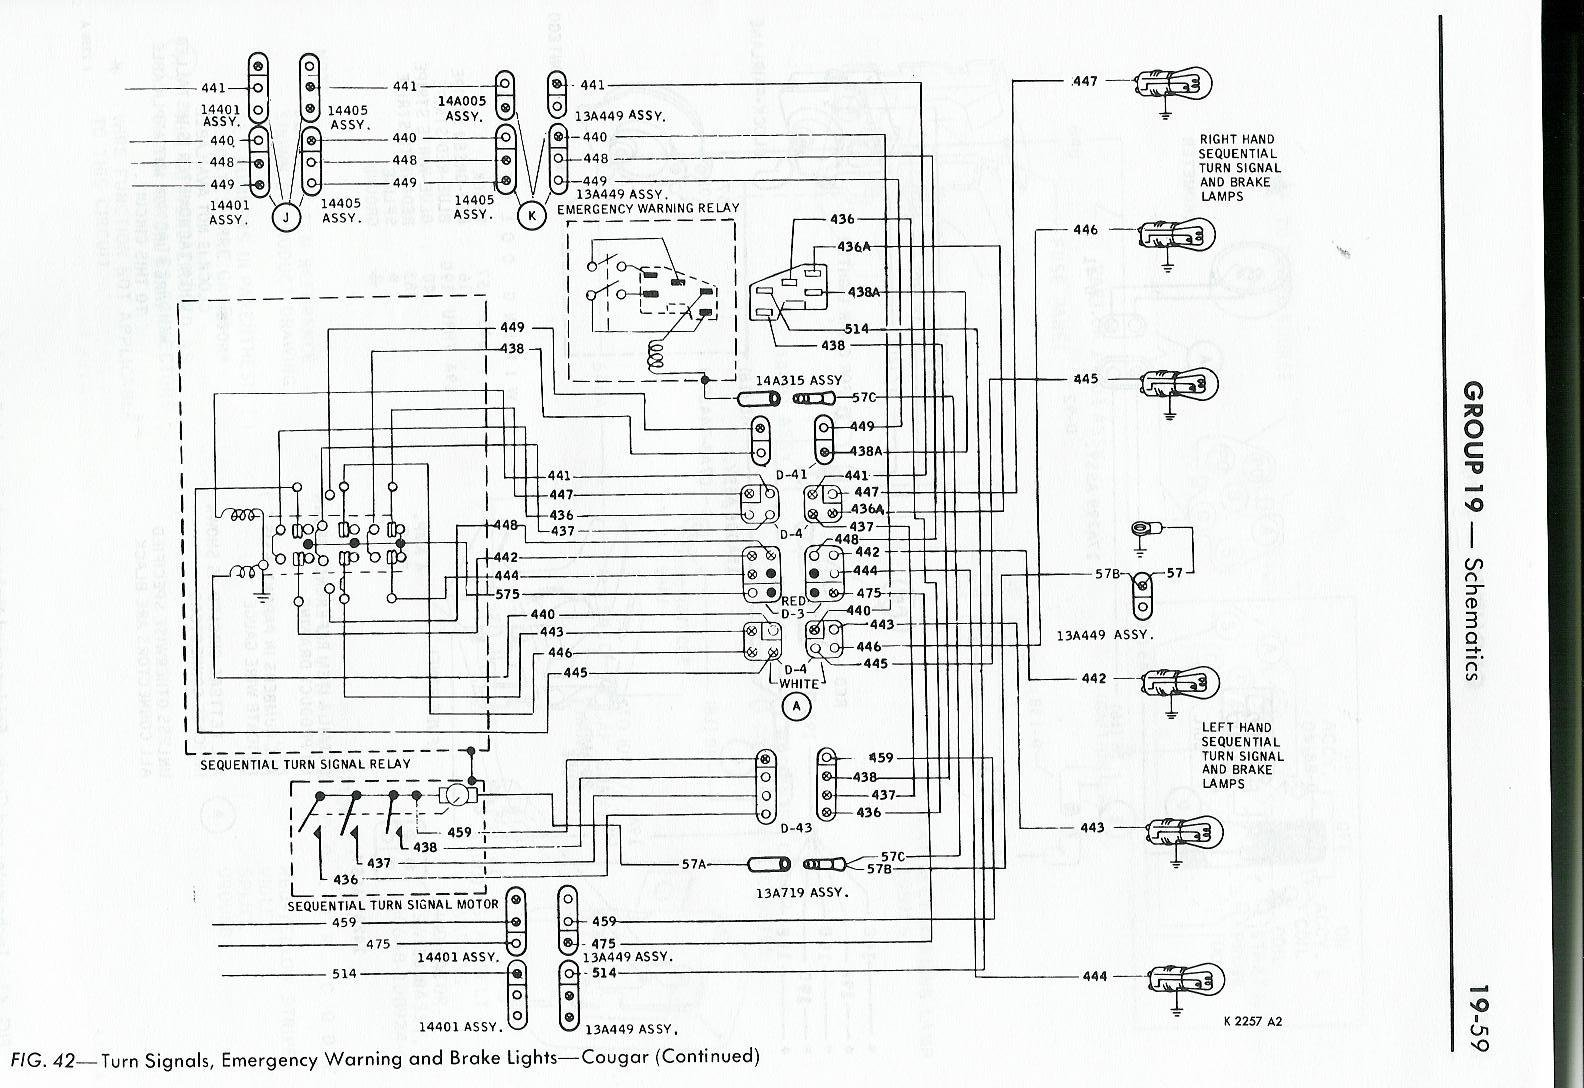 68 Mustang Turn Signal Switch Wiring Diagram